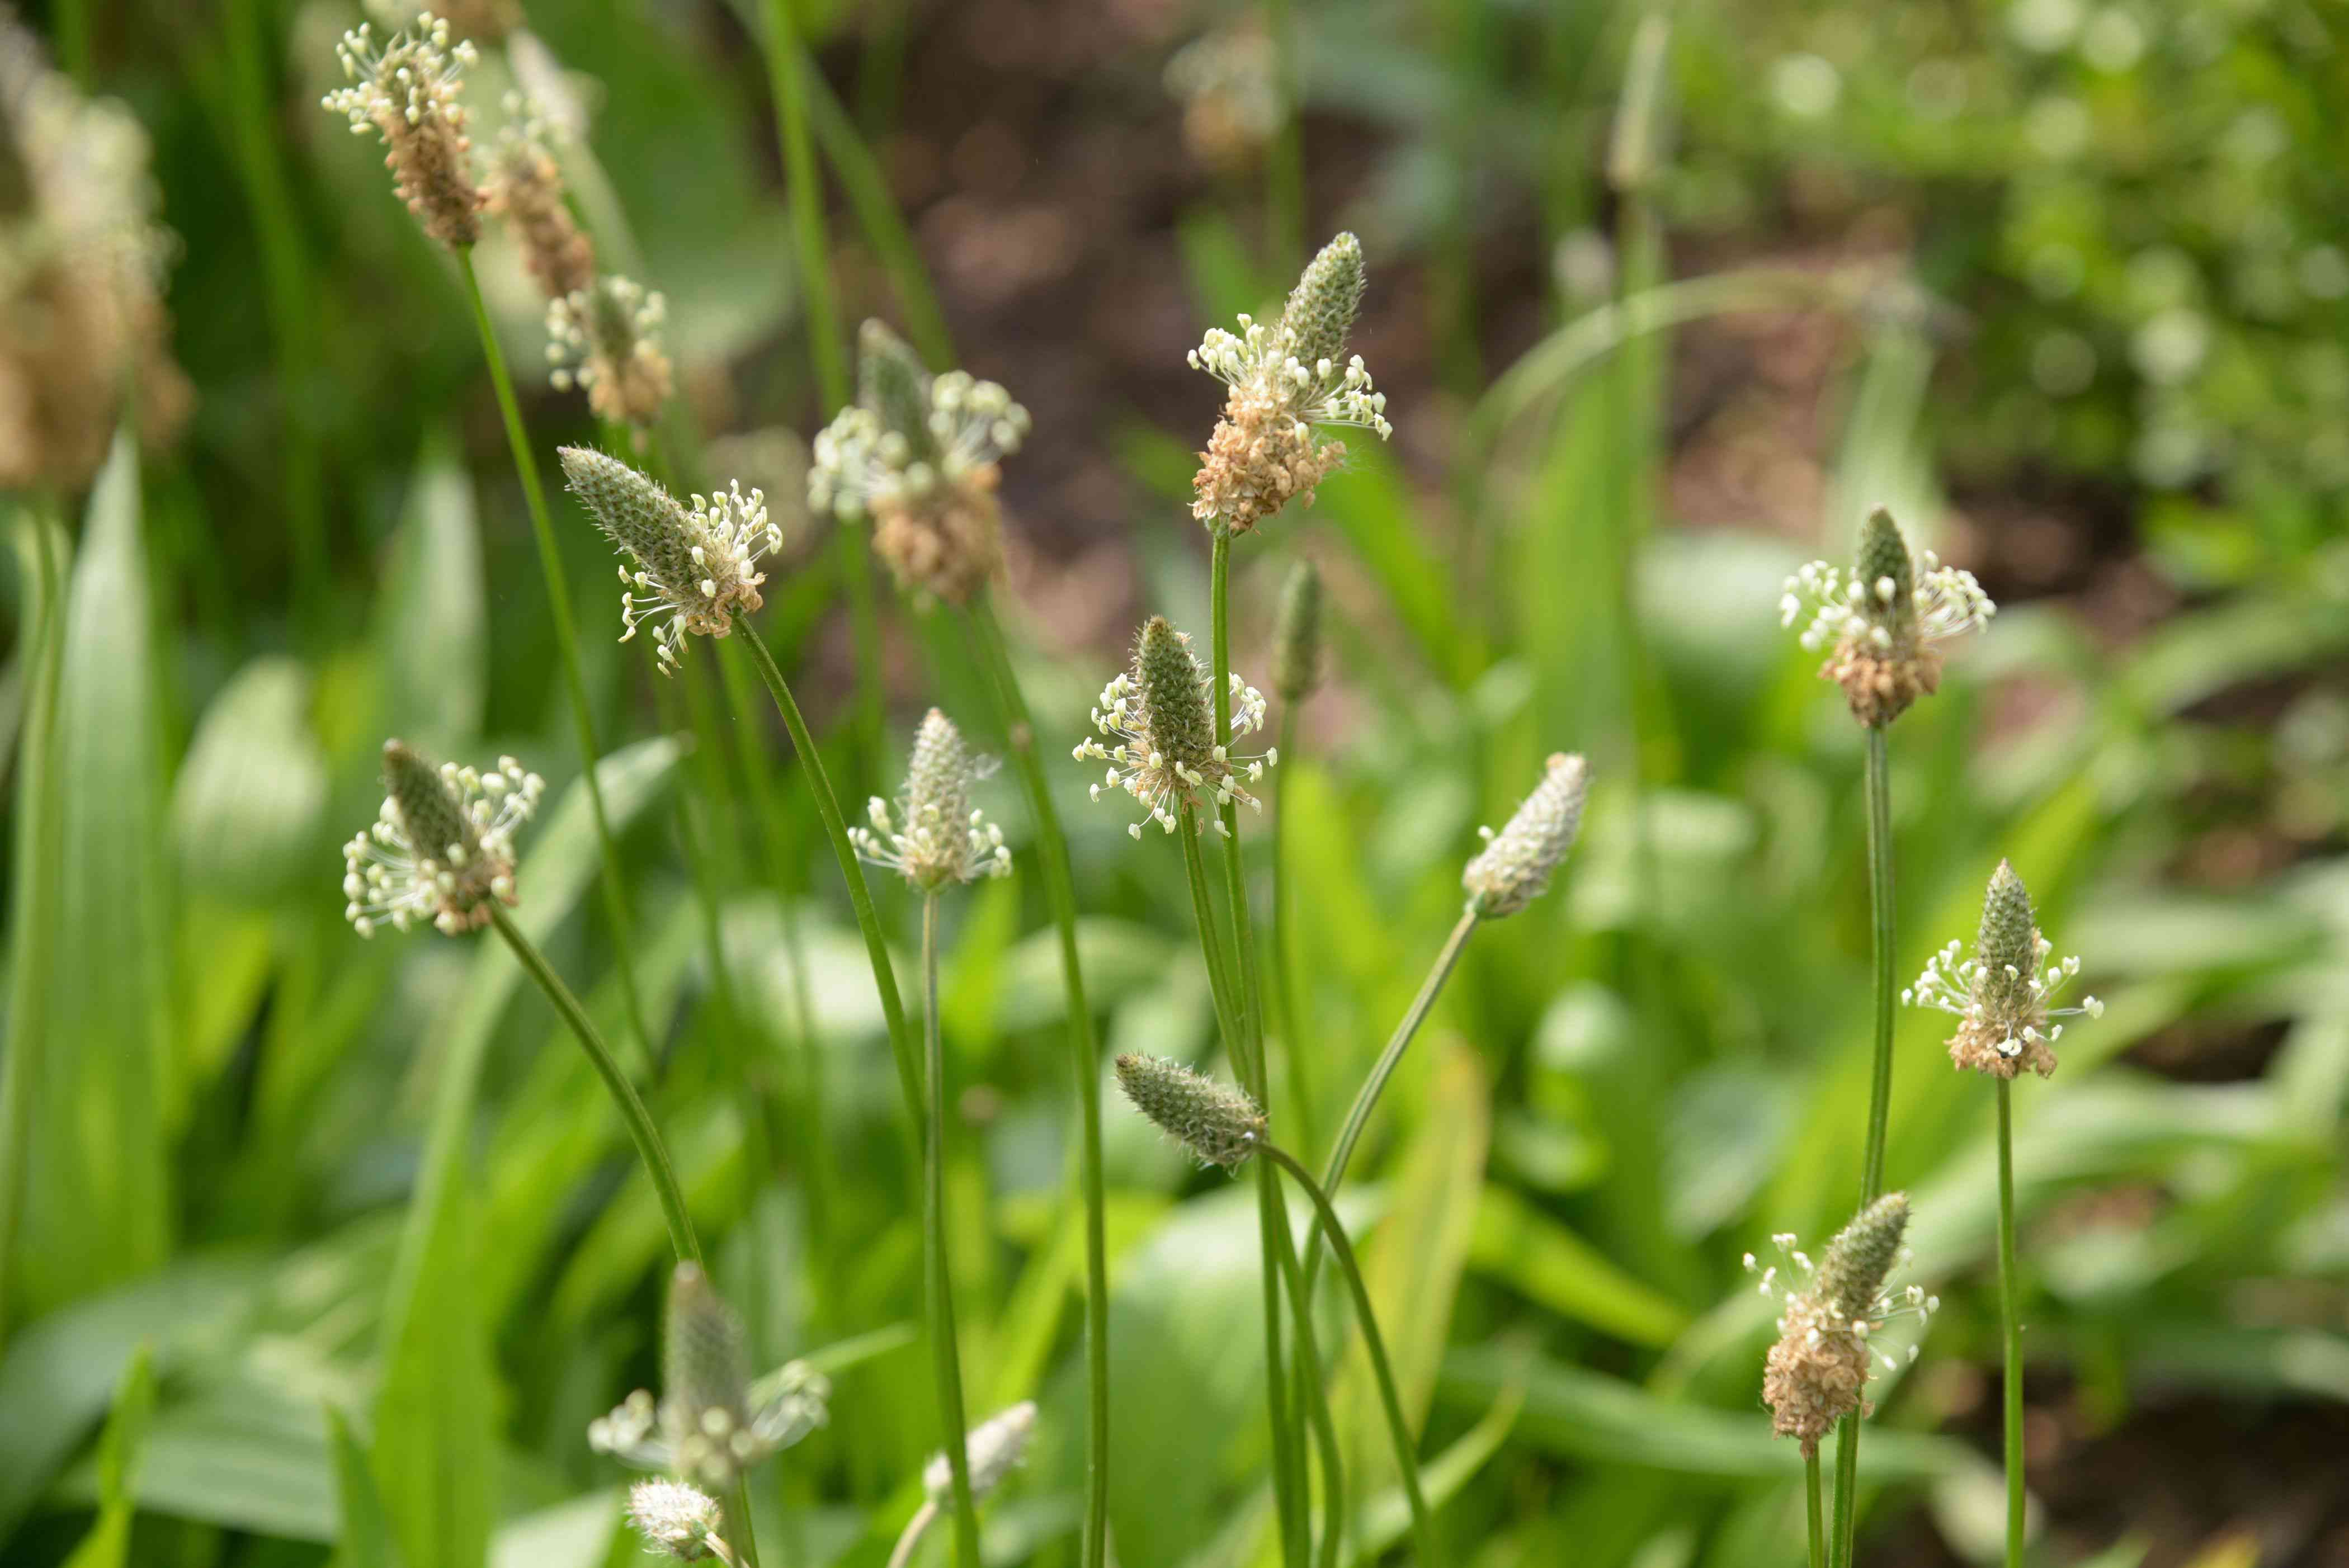 Plantain weed plants with small green cone-shaped flower heads on thin stems